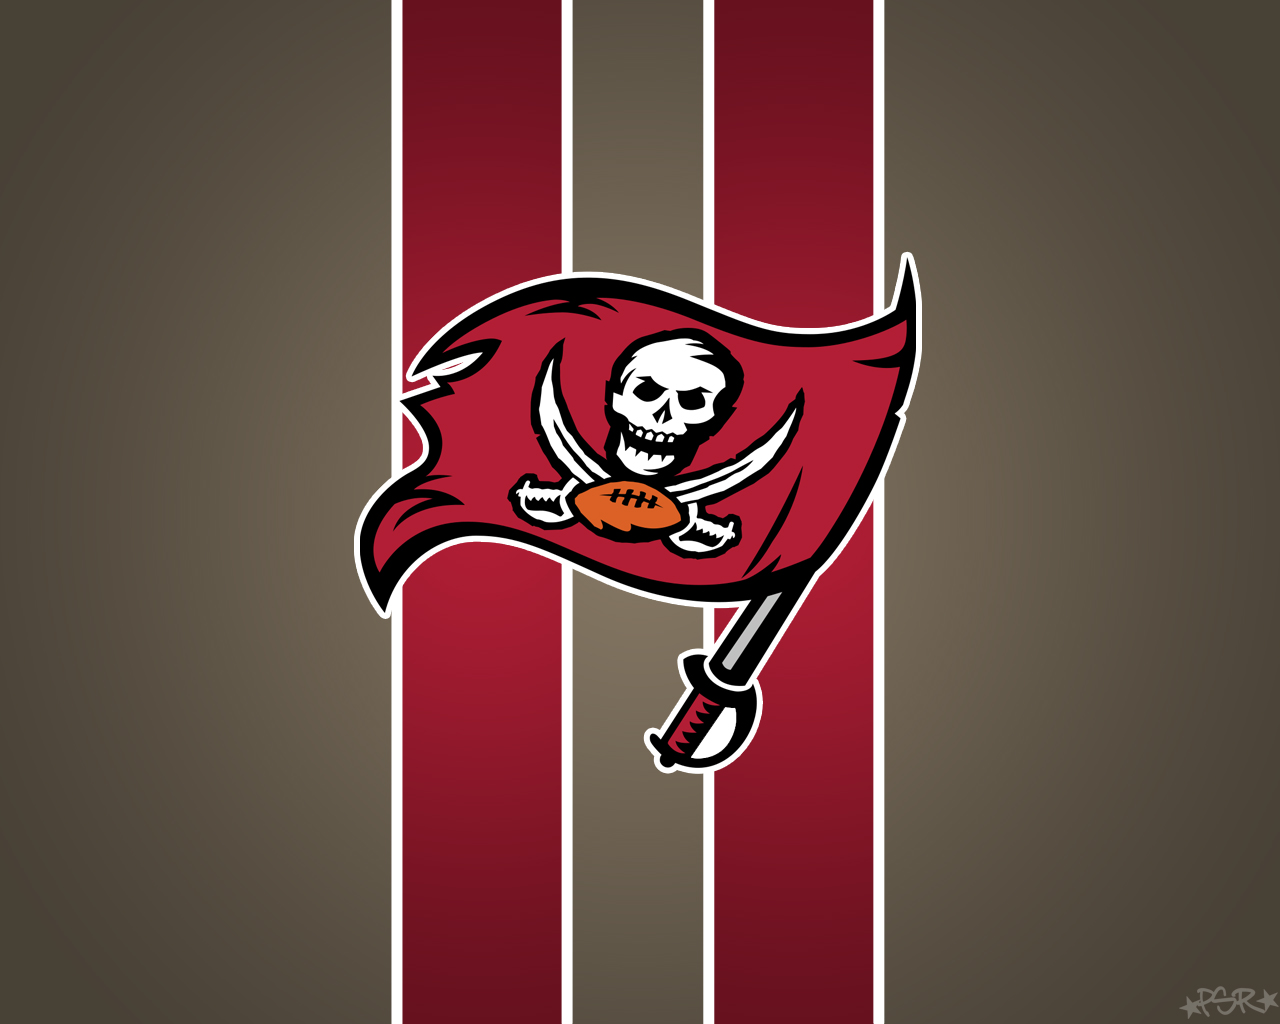 Tampa Bay Buccaneers HD images